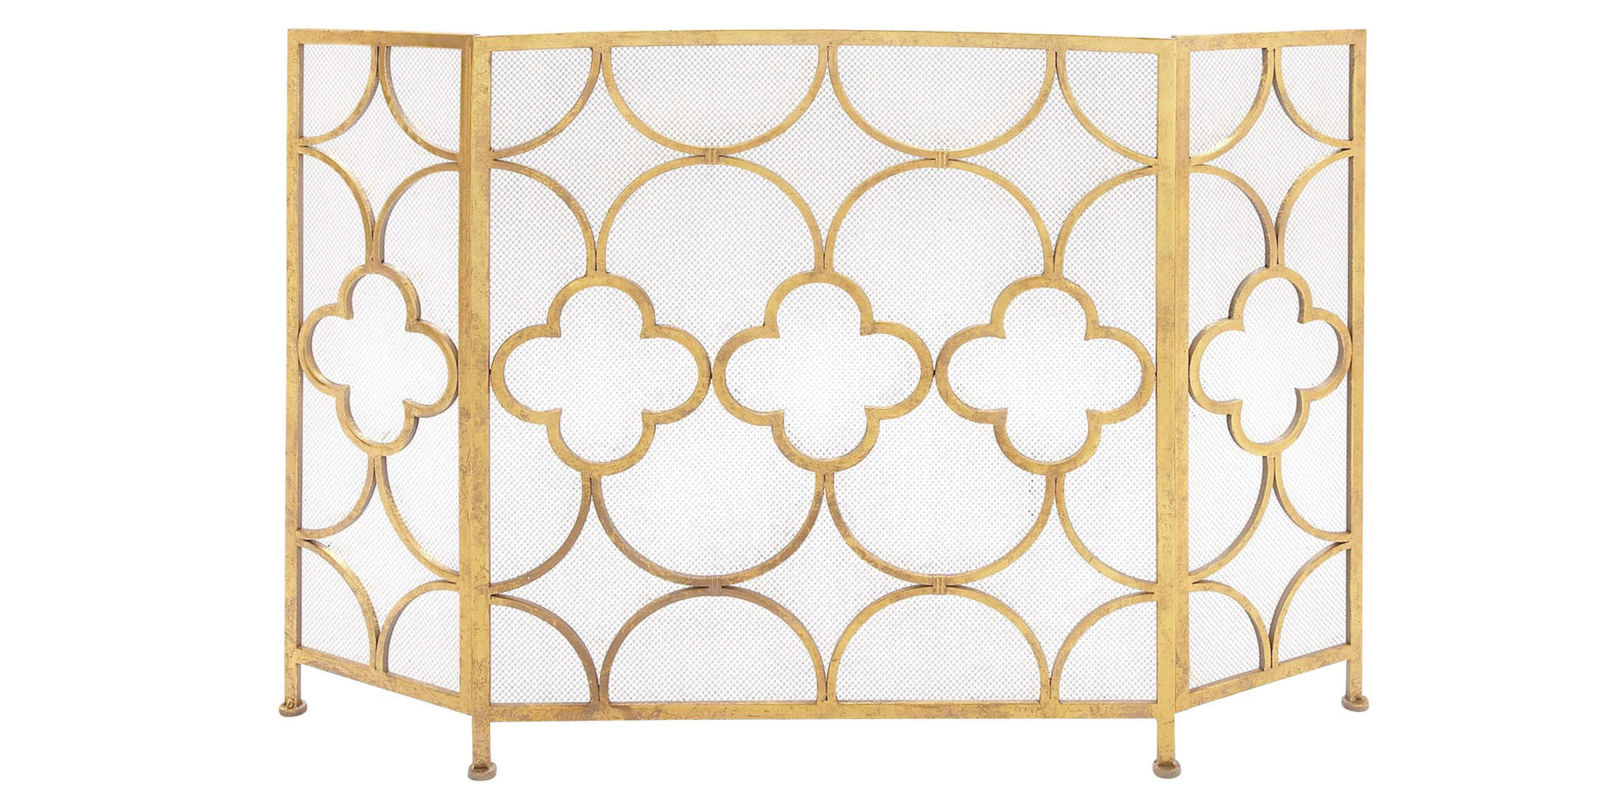 10 best decorative fireplace screens 2016 best mesh Decorative fireplace screens